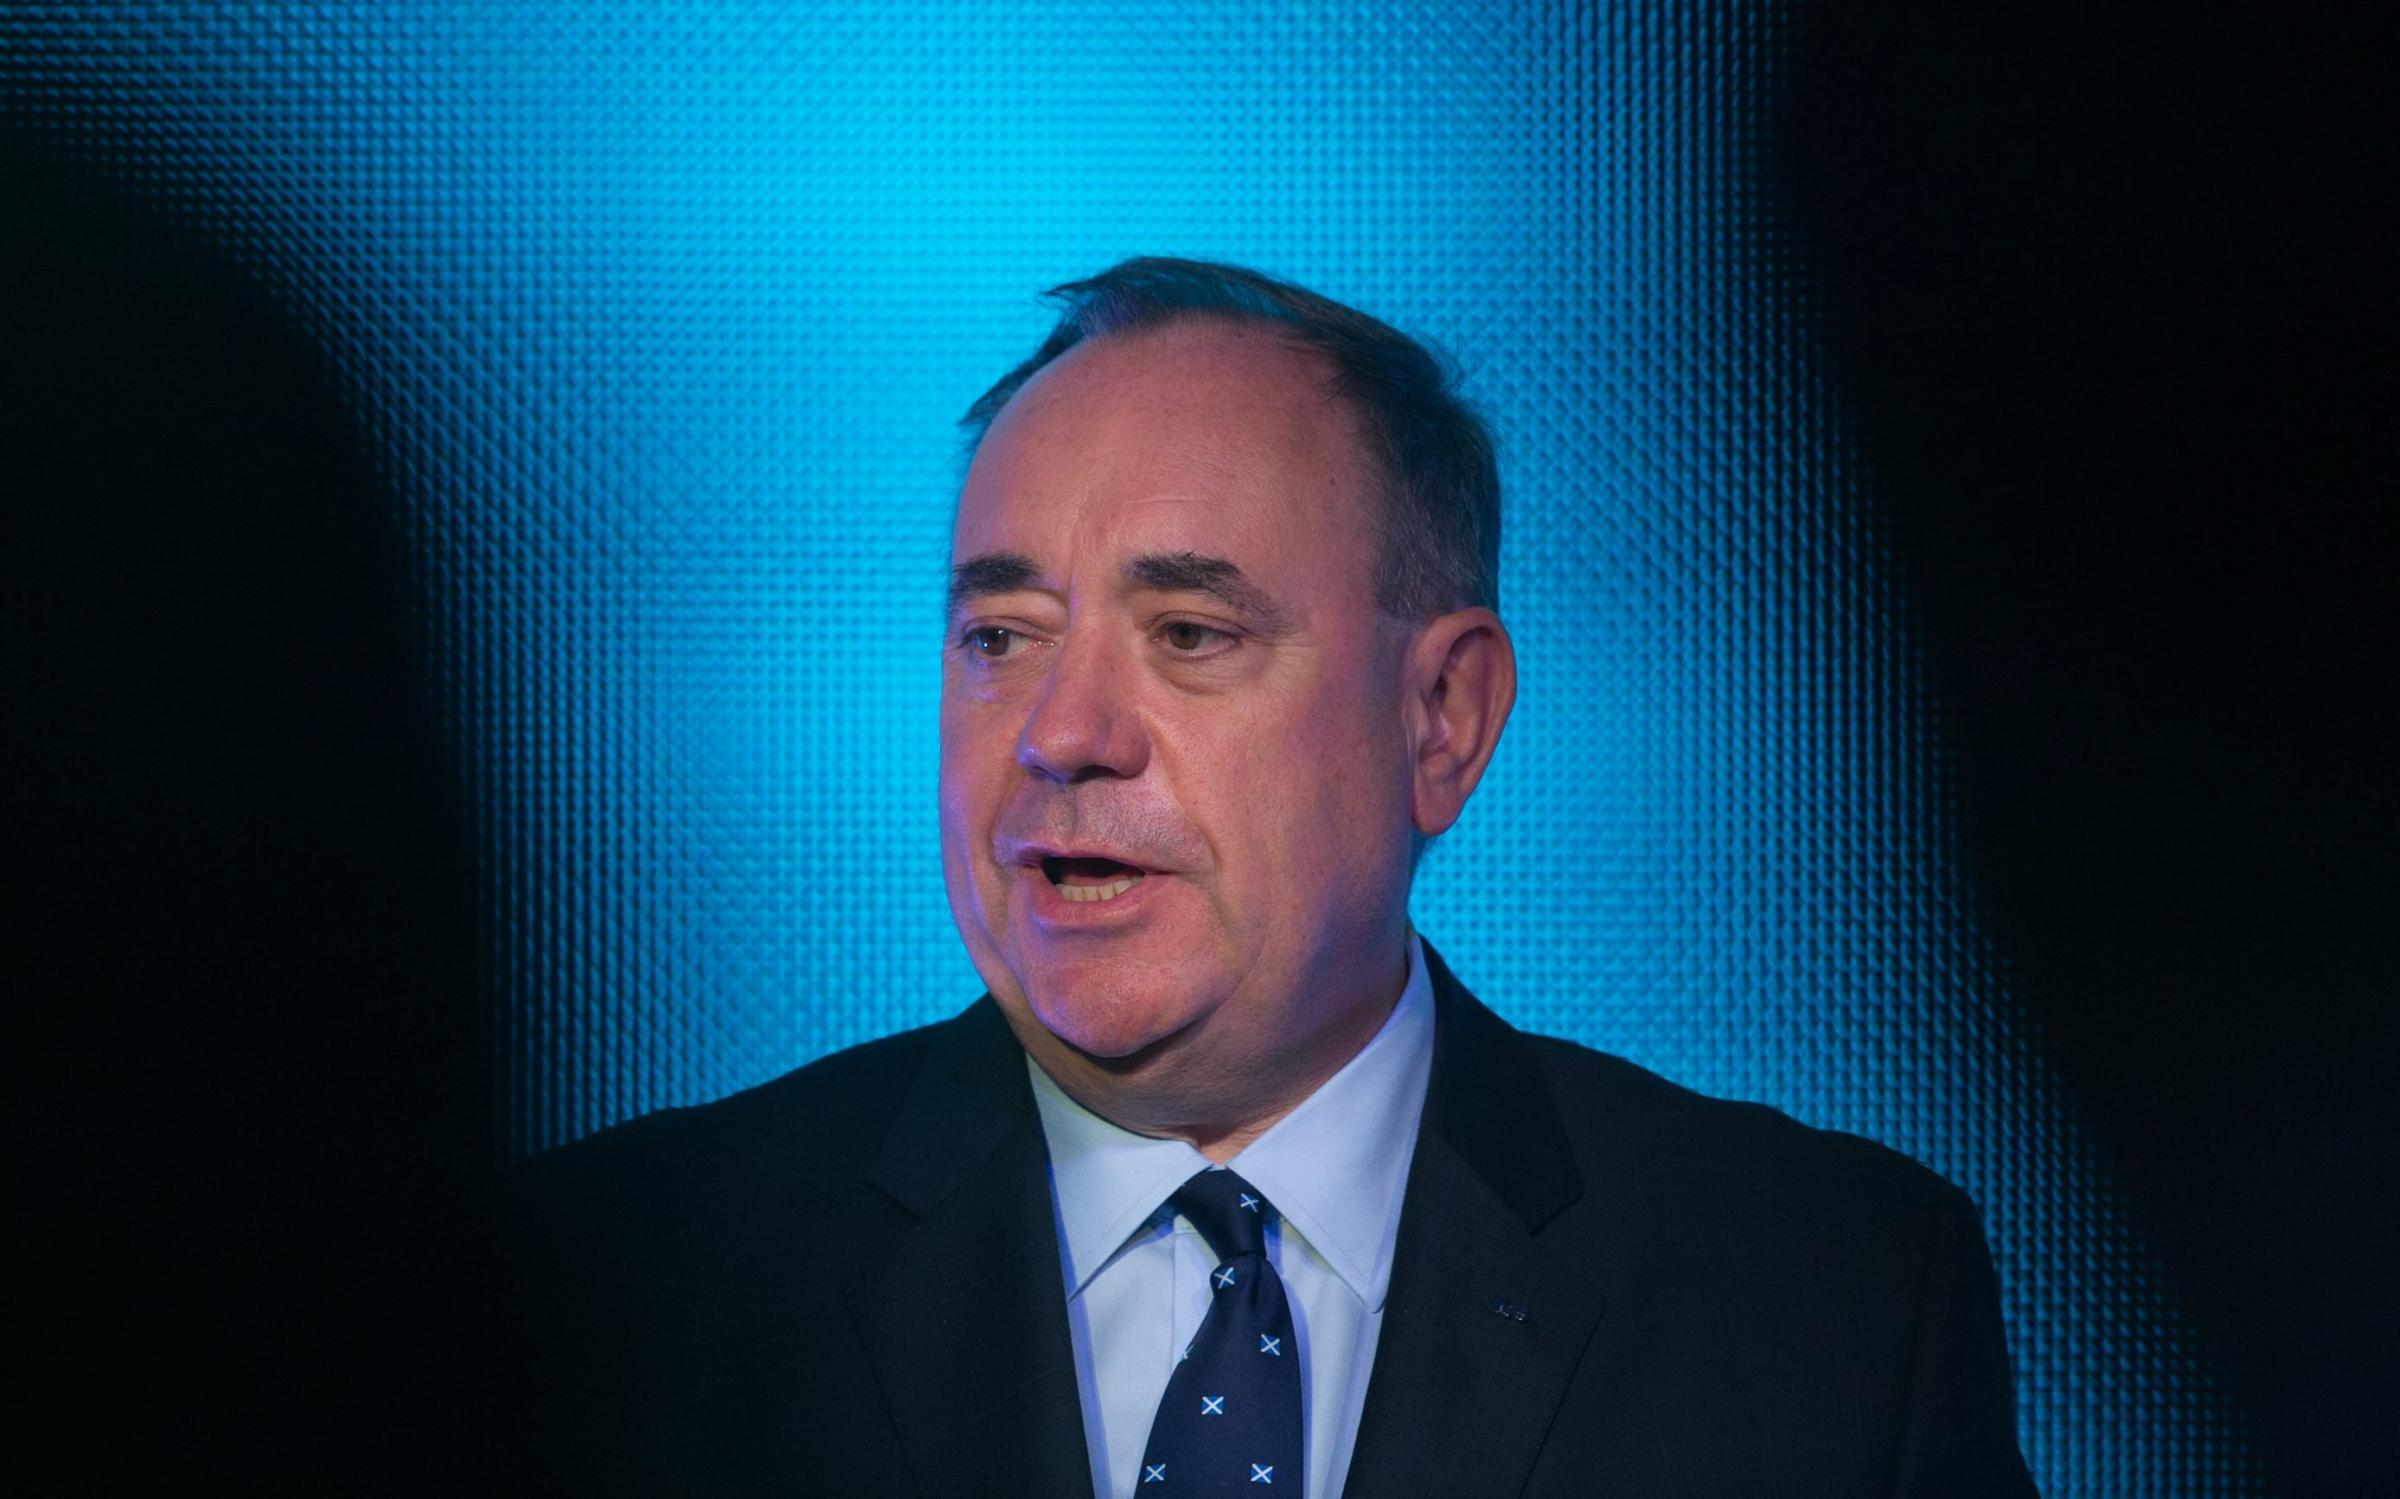 Alex Salmond denies harassment claims and takes Scottish government to court